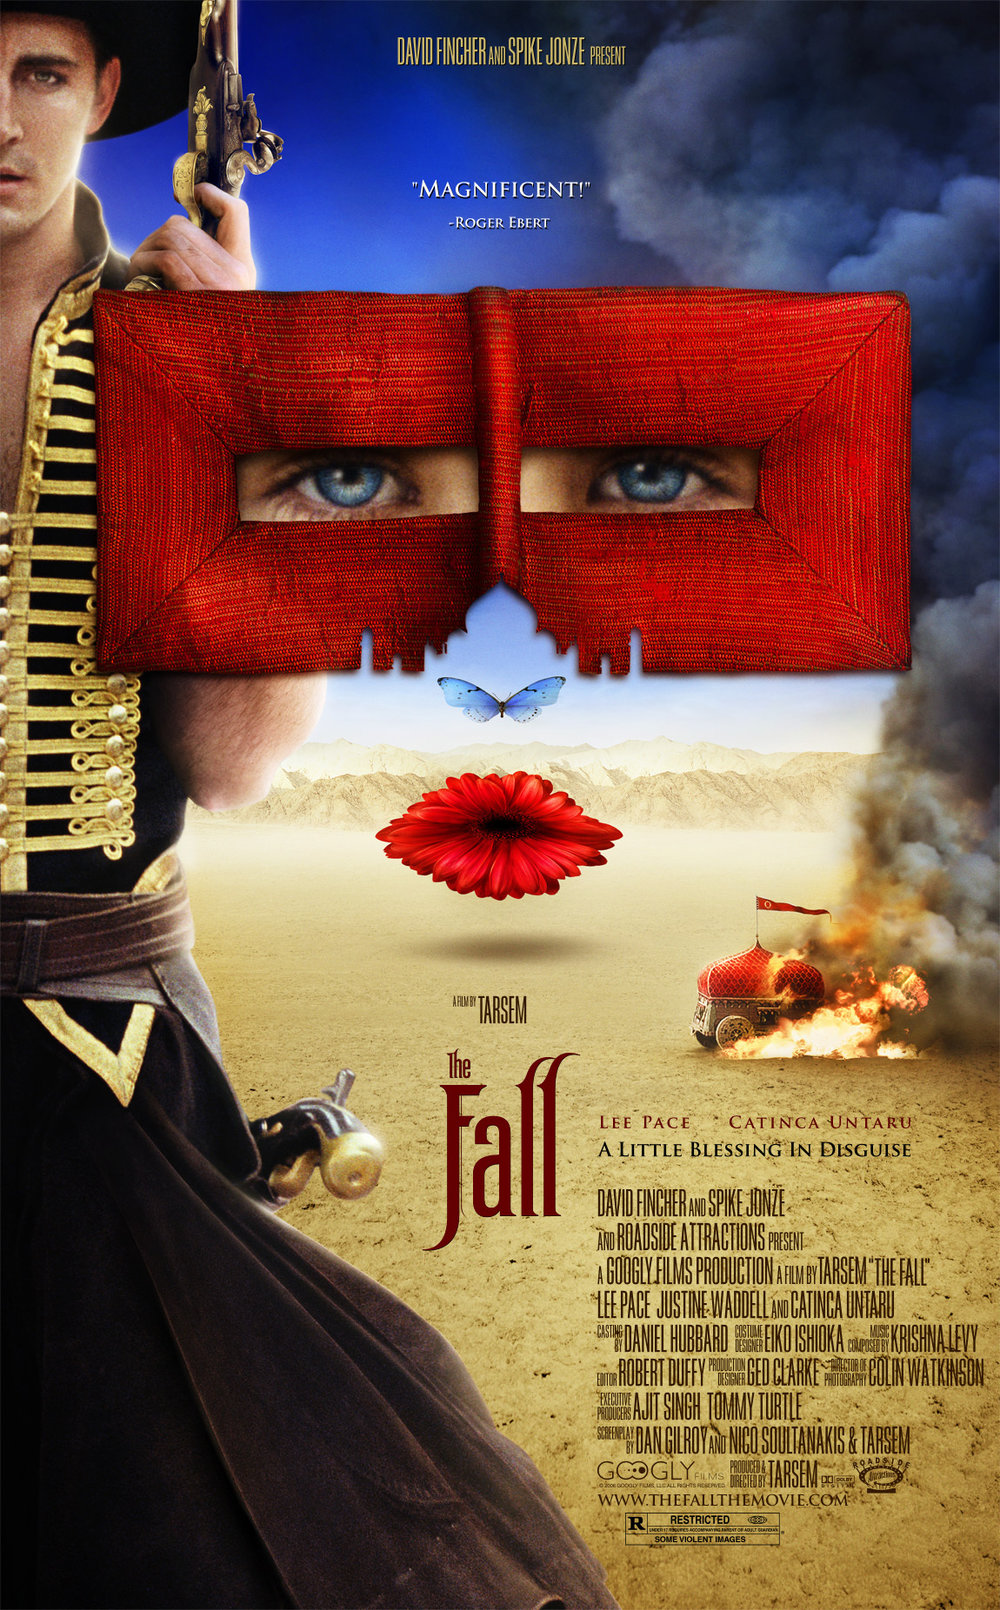 The Fall - 2006 (Feature) – 1h 57m The Fall is an adventure/fantasy film starring Lee Pace, Catinca Untaru, and Justine Waddell.In a hospital on the outskirts of 1920s Los Angeles, an injured stuntman begins to tell a fellow patient, a little girl with a broken arm, a fantastic story of five mythical heroes. Thanks to his fractured state of mind and her vivid imagination, the line between fiction and reality blurs as the tale advances.The film appeared on several critics' top ten lists of the best films of 2008.